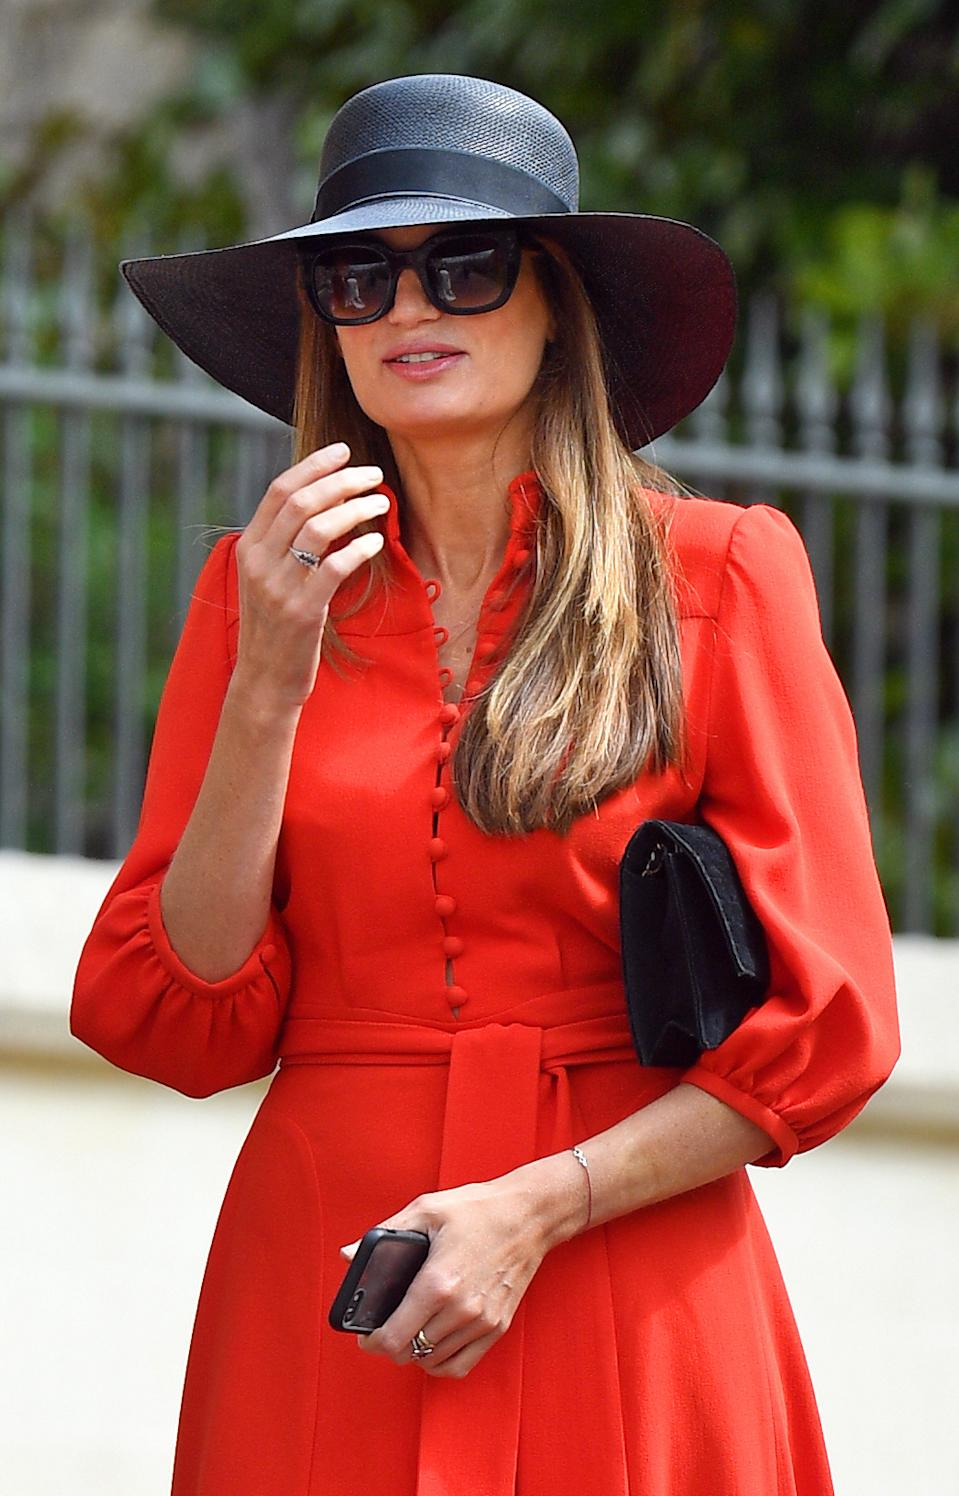 Journalist and producer Jemima attended the wedding of Lady Gabriella Windsor earlier this year - where William was also a guest